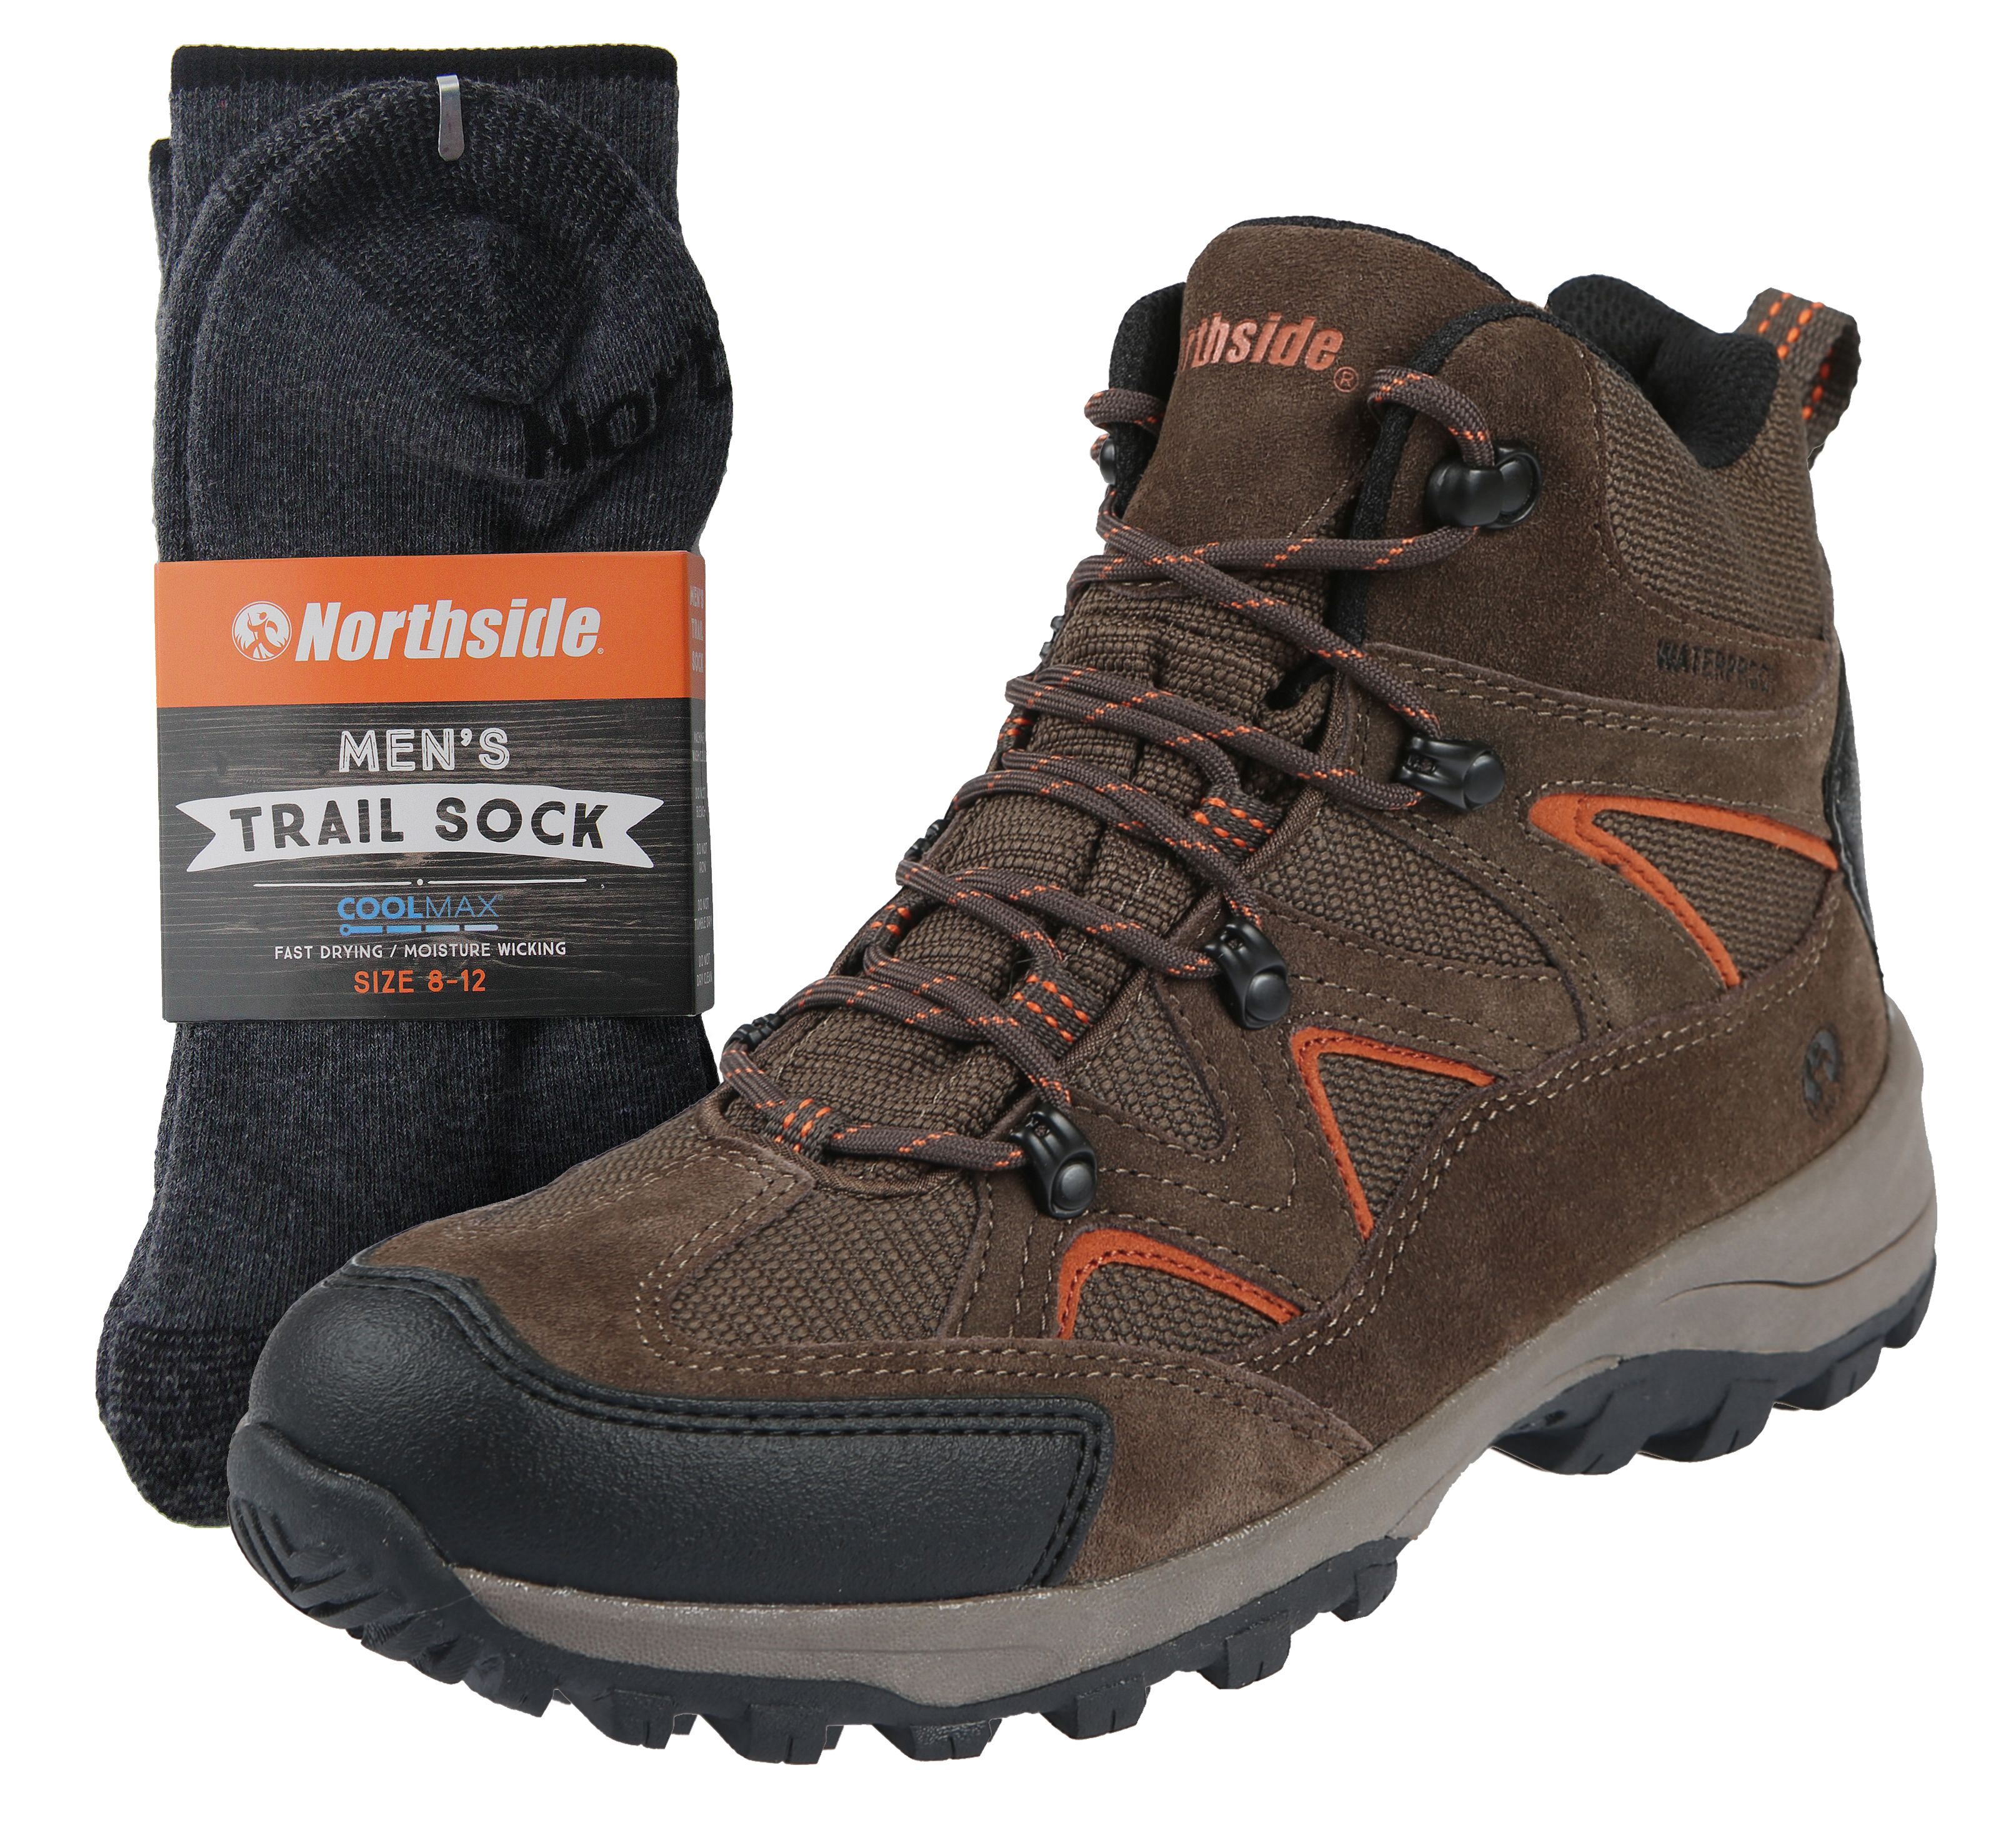 Northside Mens Snohomish Leather Waterproof Mid Hiking Boot and Trail Sock Combo